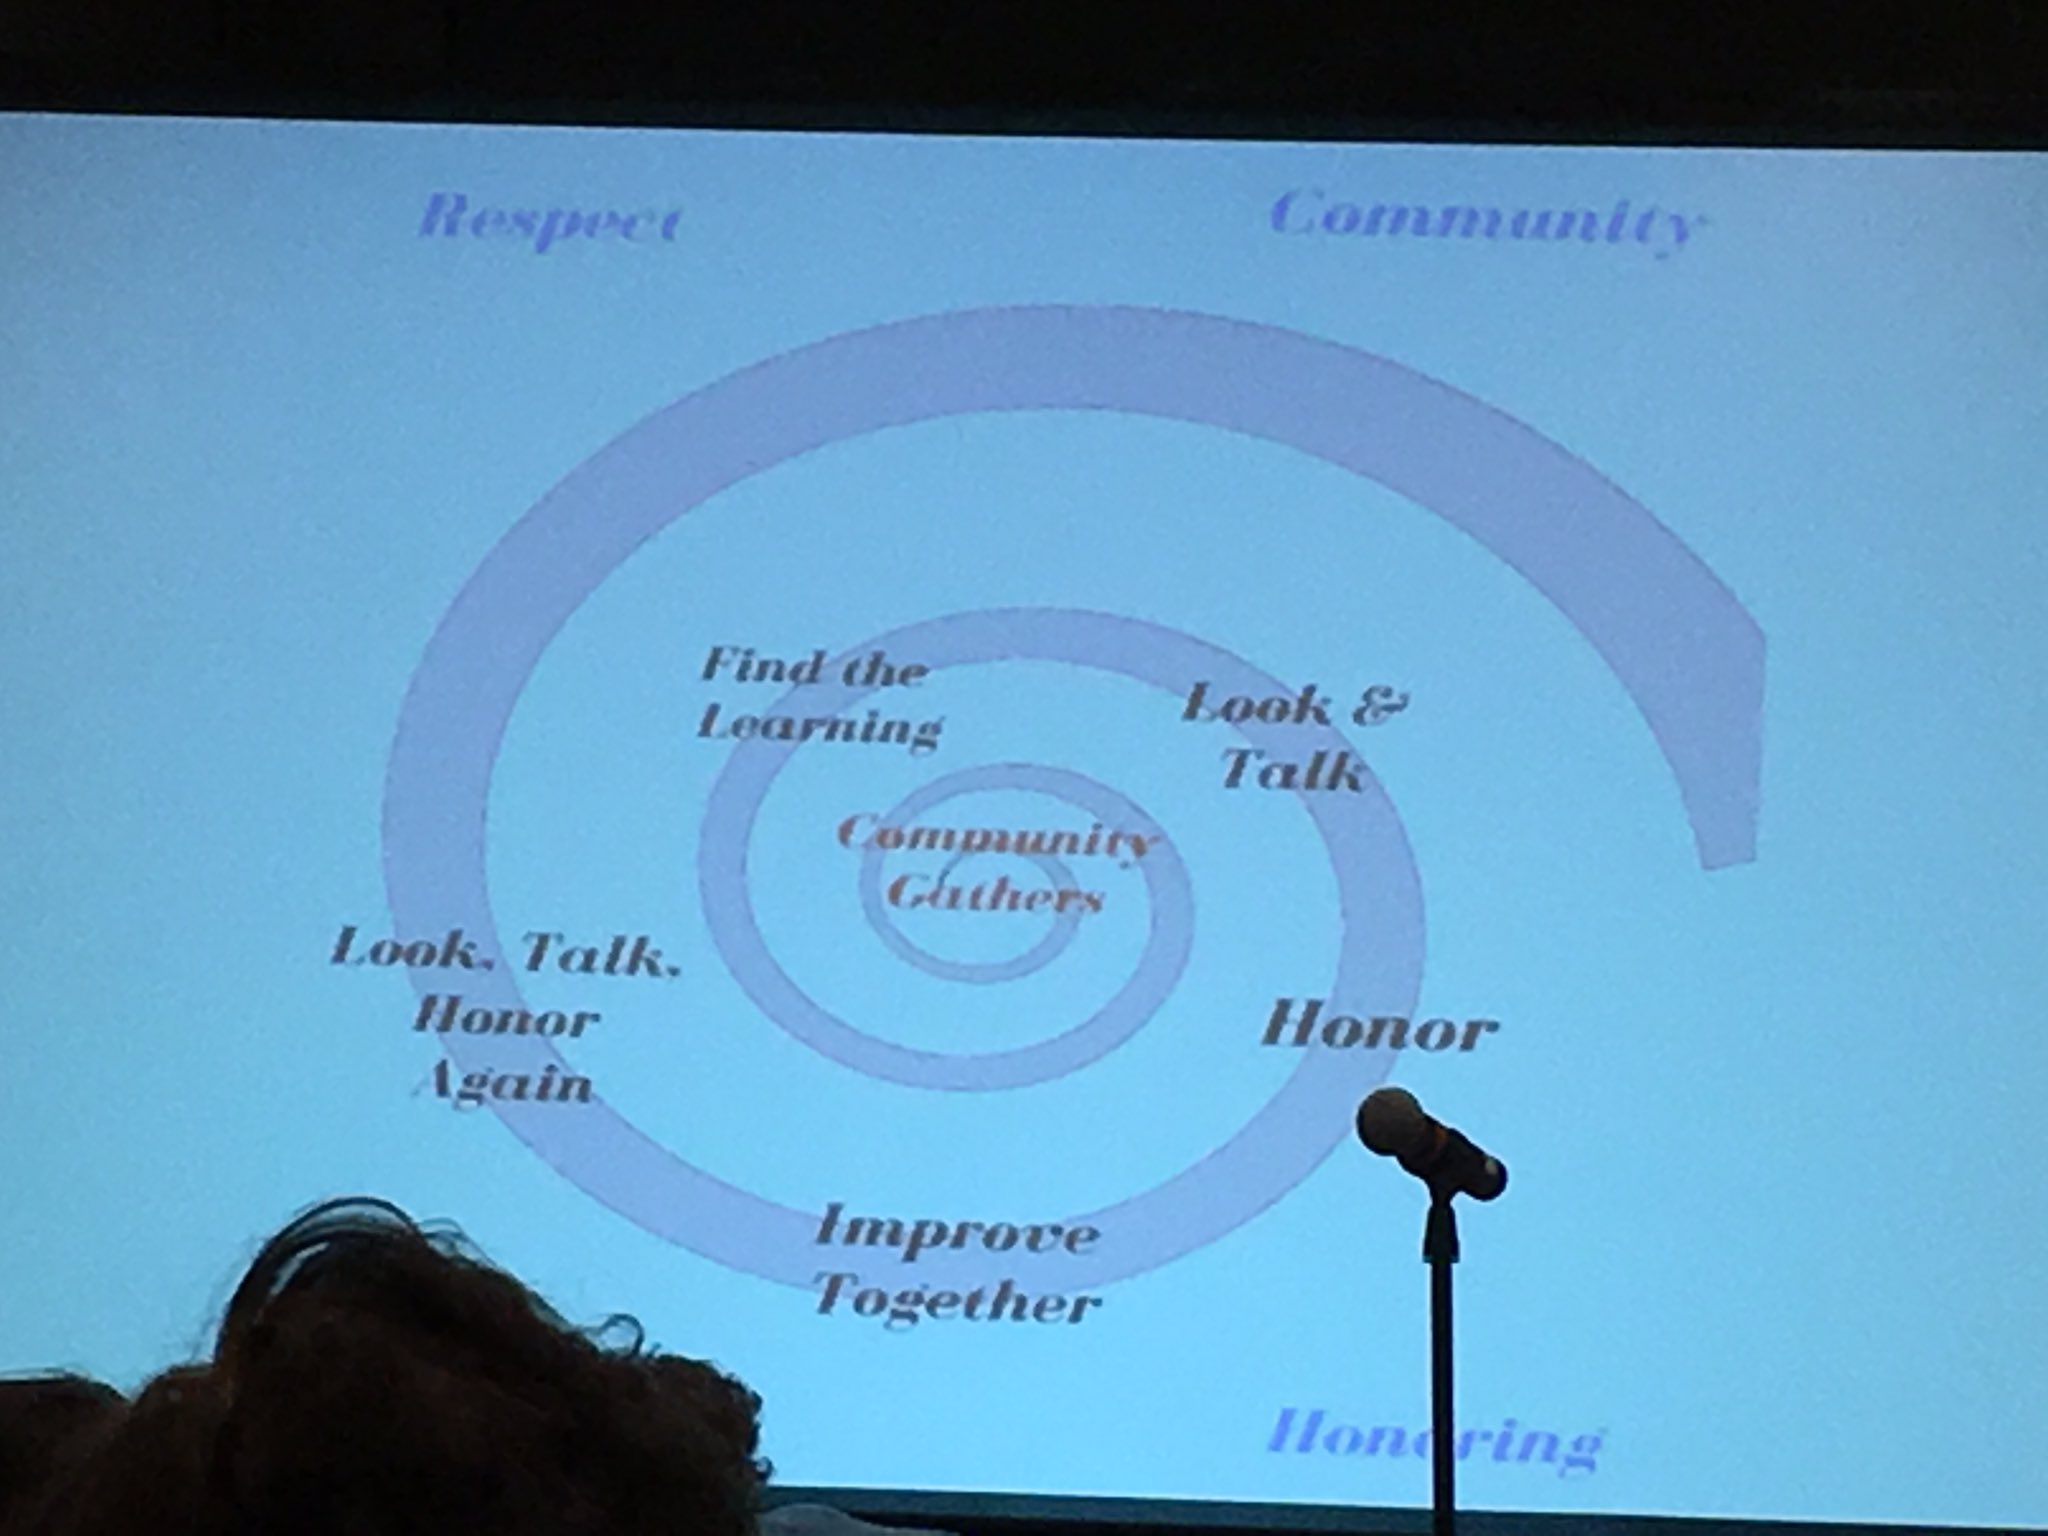 Inst of American Indian Arts used indigenous assessment model for convos with faculty about the library #whatsyourstory #acrl2017 https://t.co/Rx7VkEUken